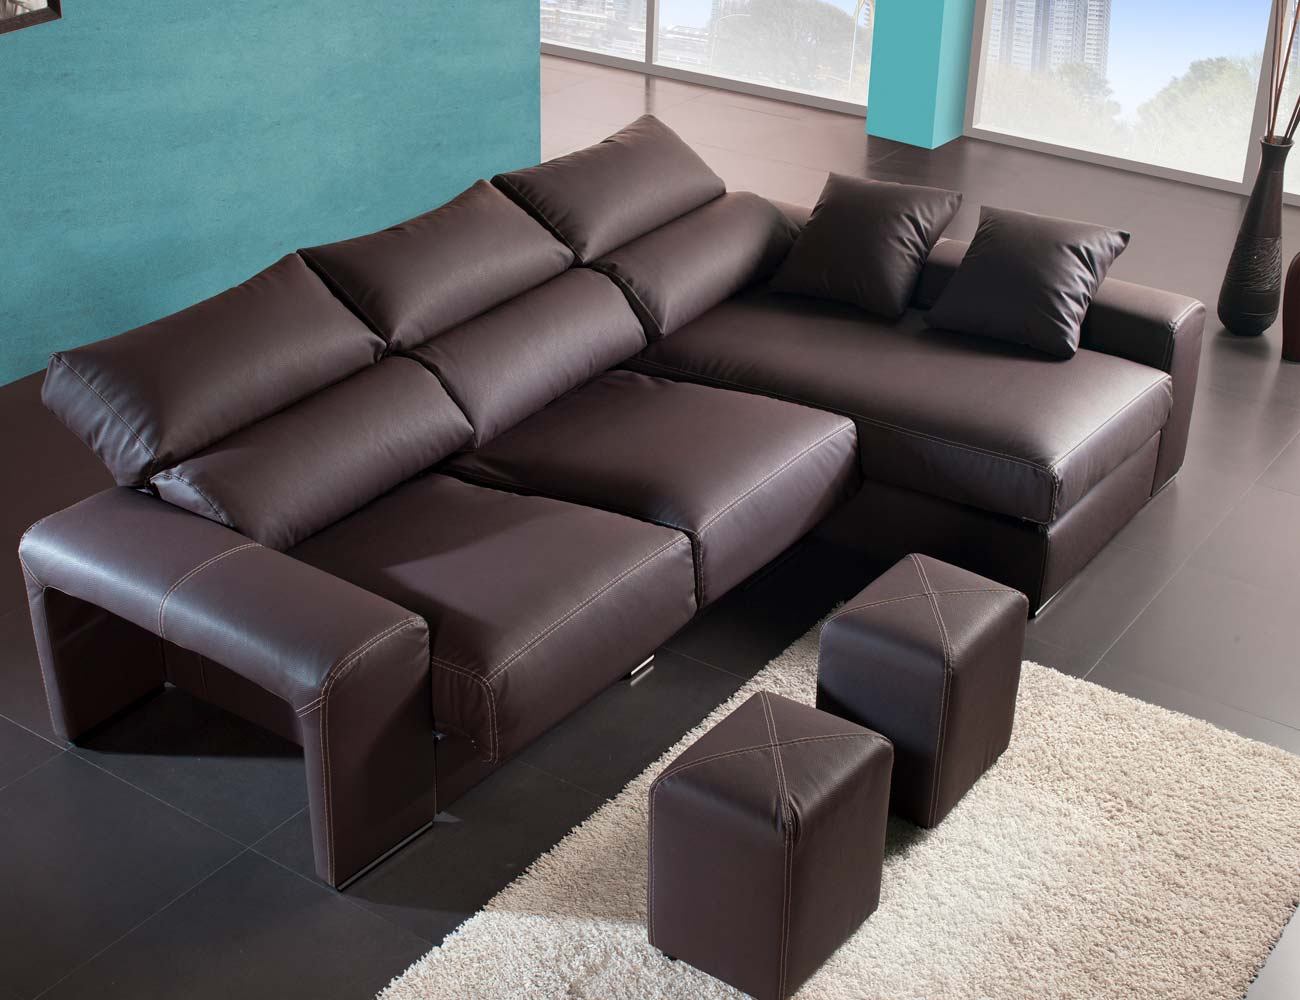 Sofa chaiselongue moderno polipiel chocolate poufs taburetes24